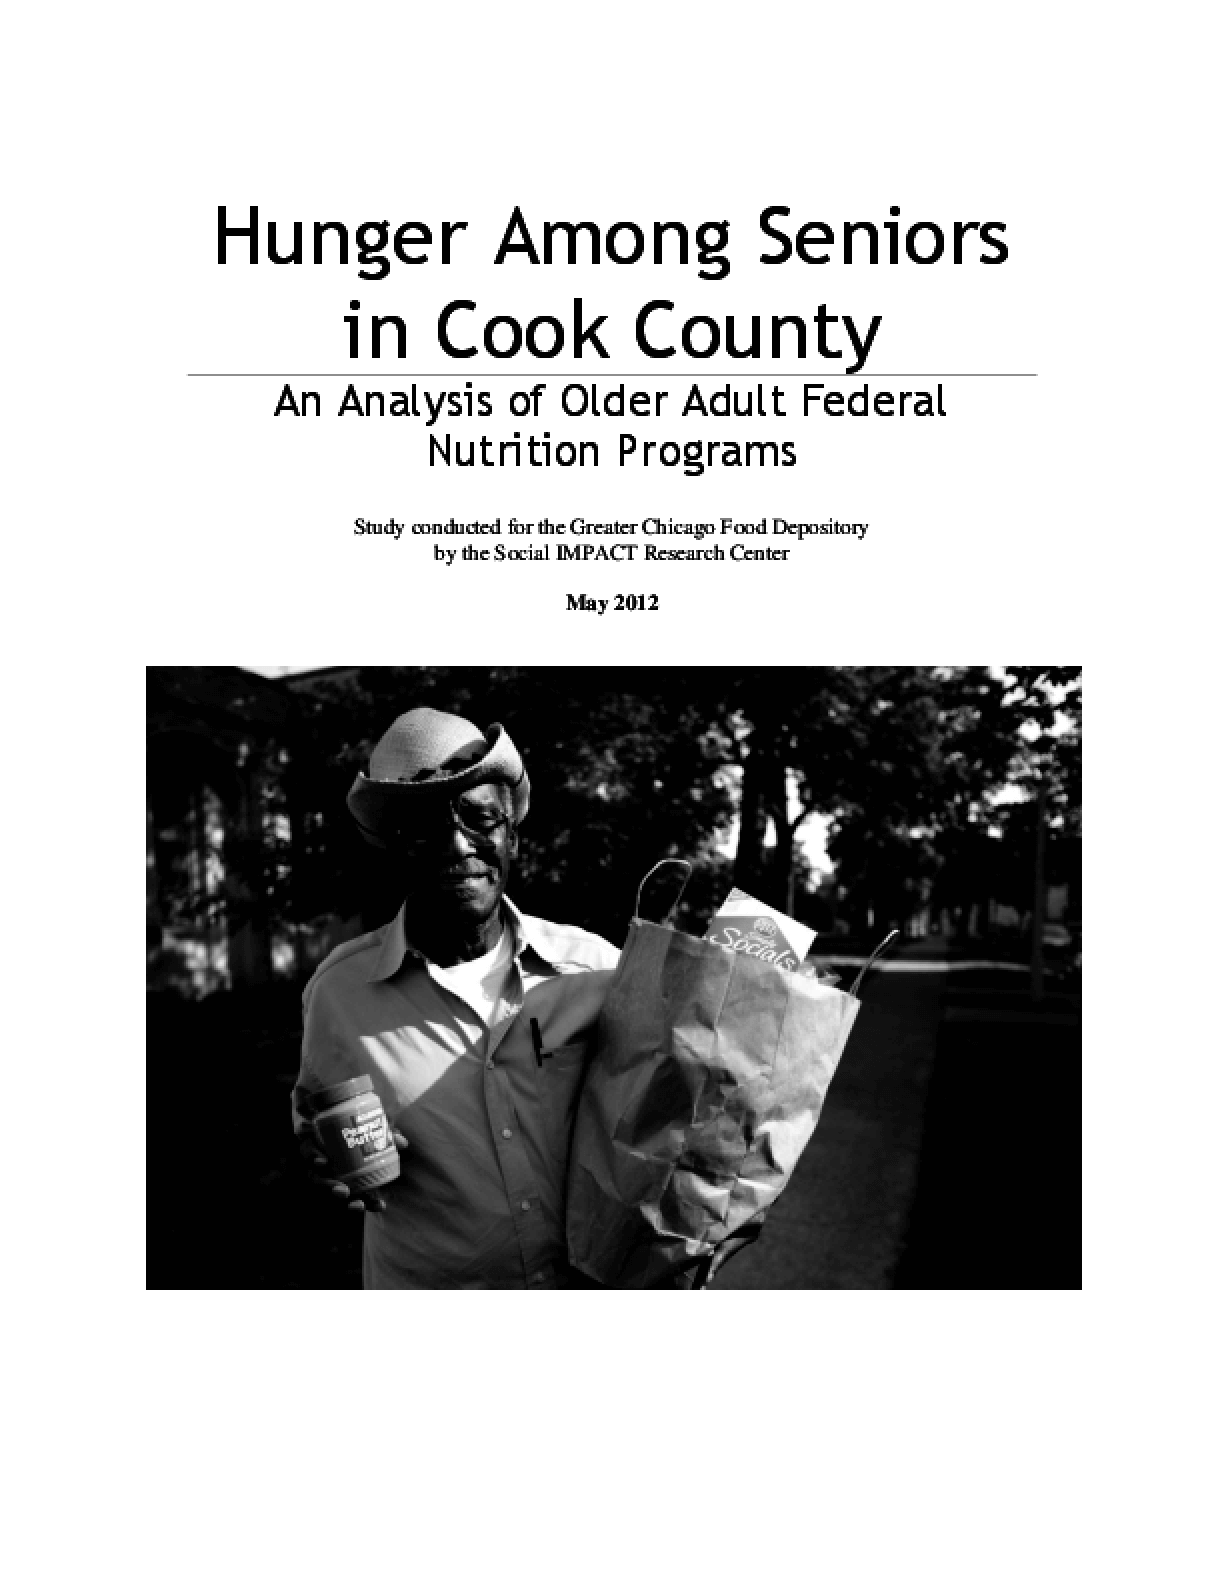 Hunger Among Seniors in Cook County: An Analysis of Older Adult Federal Nutrition Programs